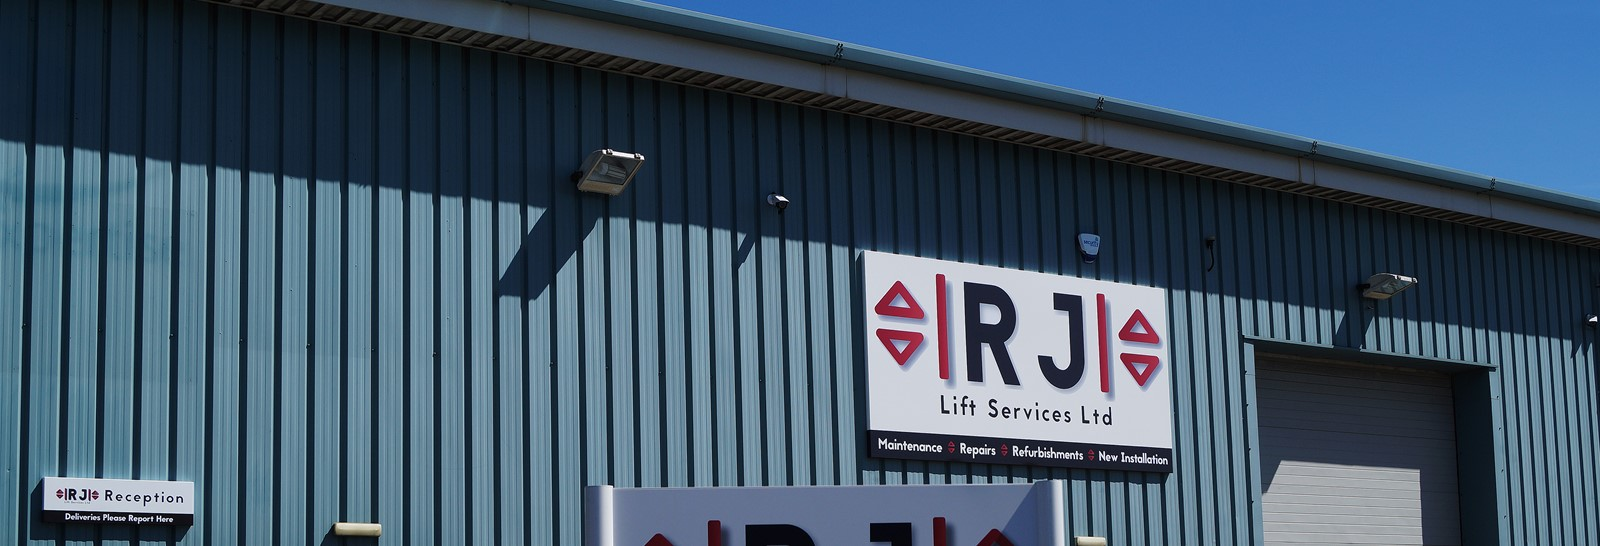 Signs Express helps Stoke lift maintenance firm move on up!